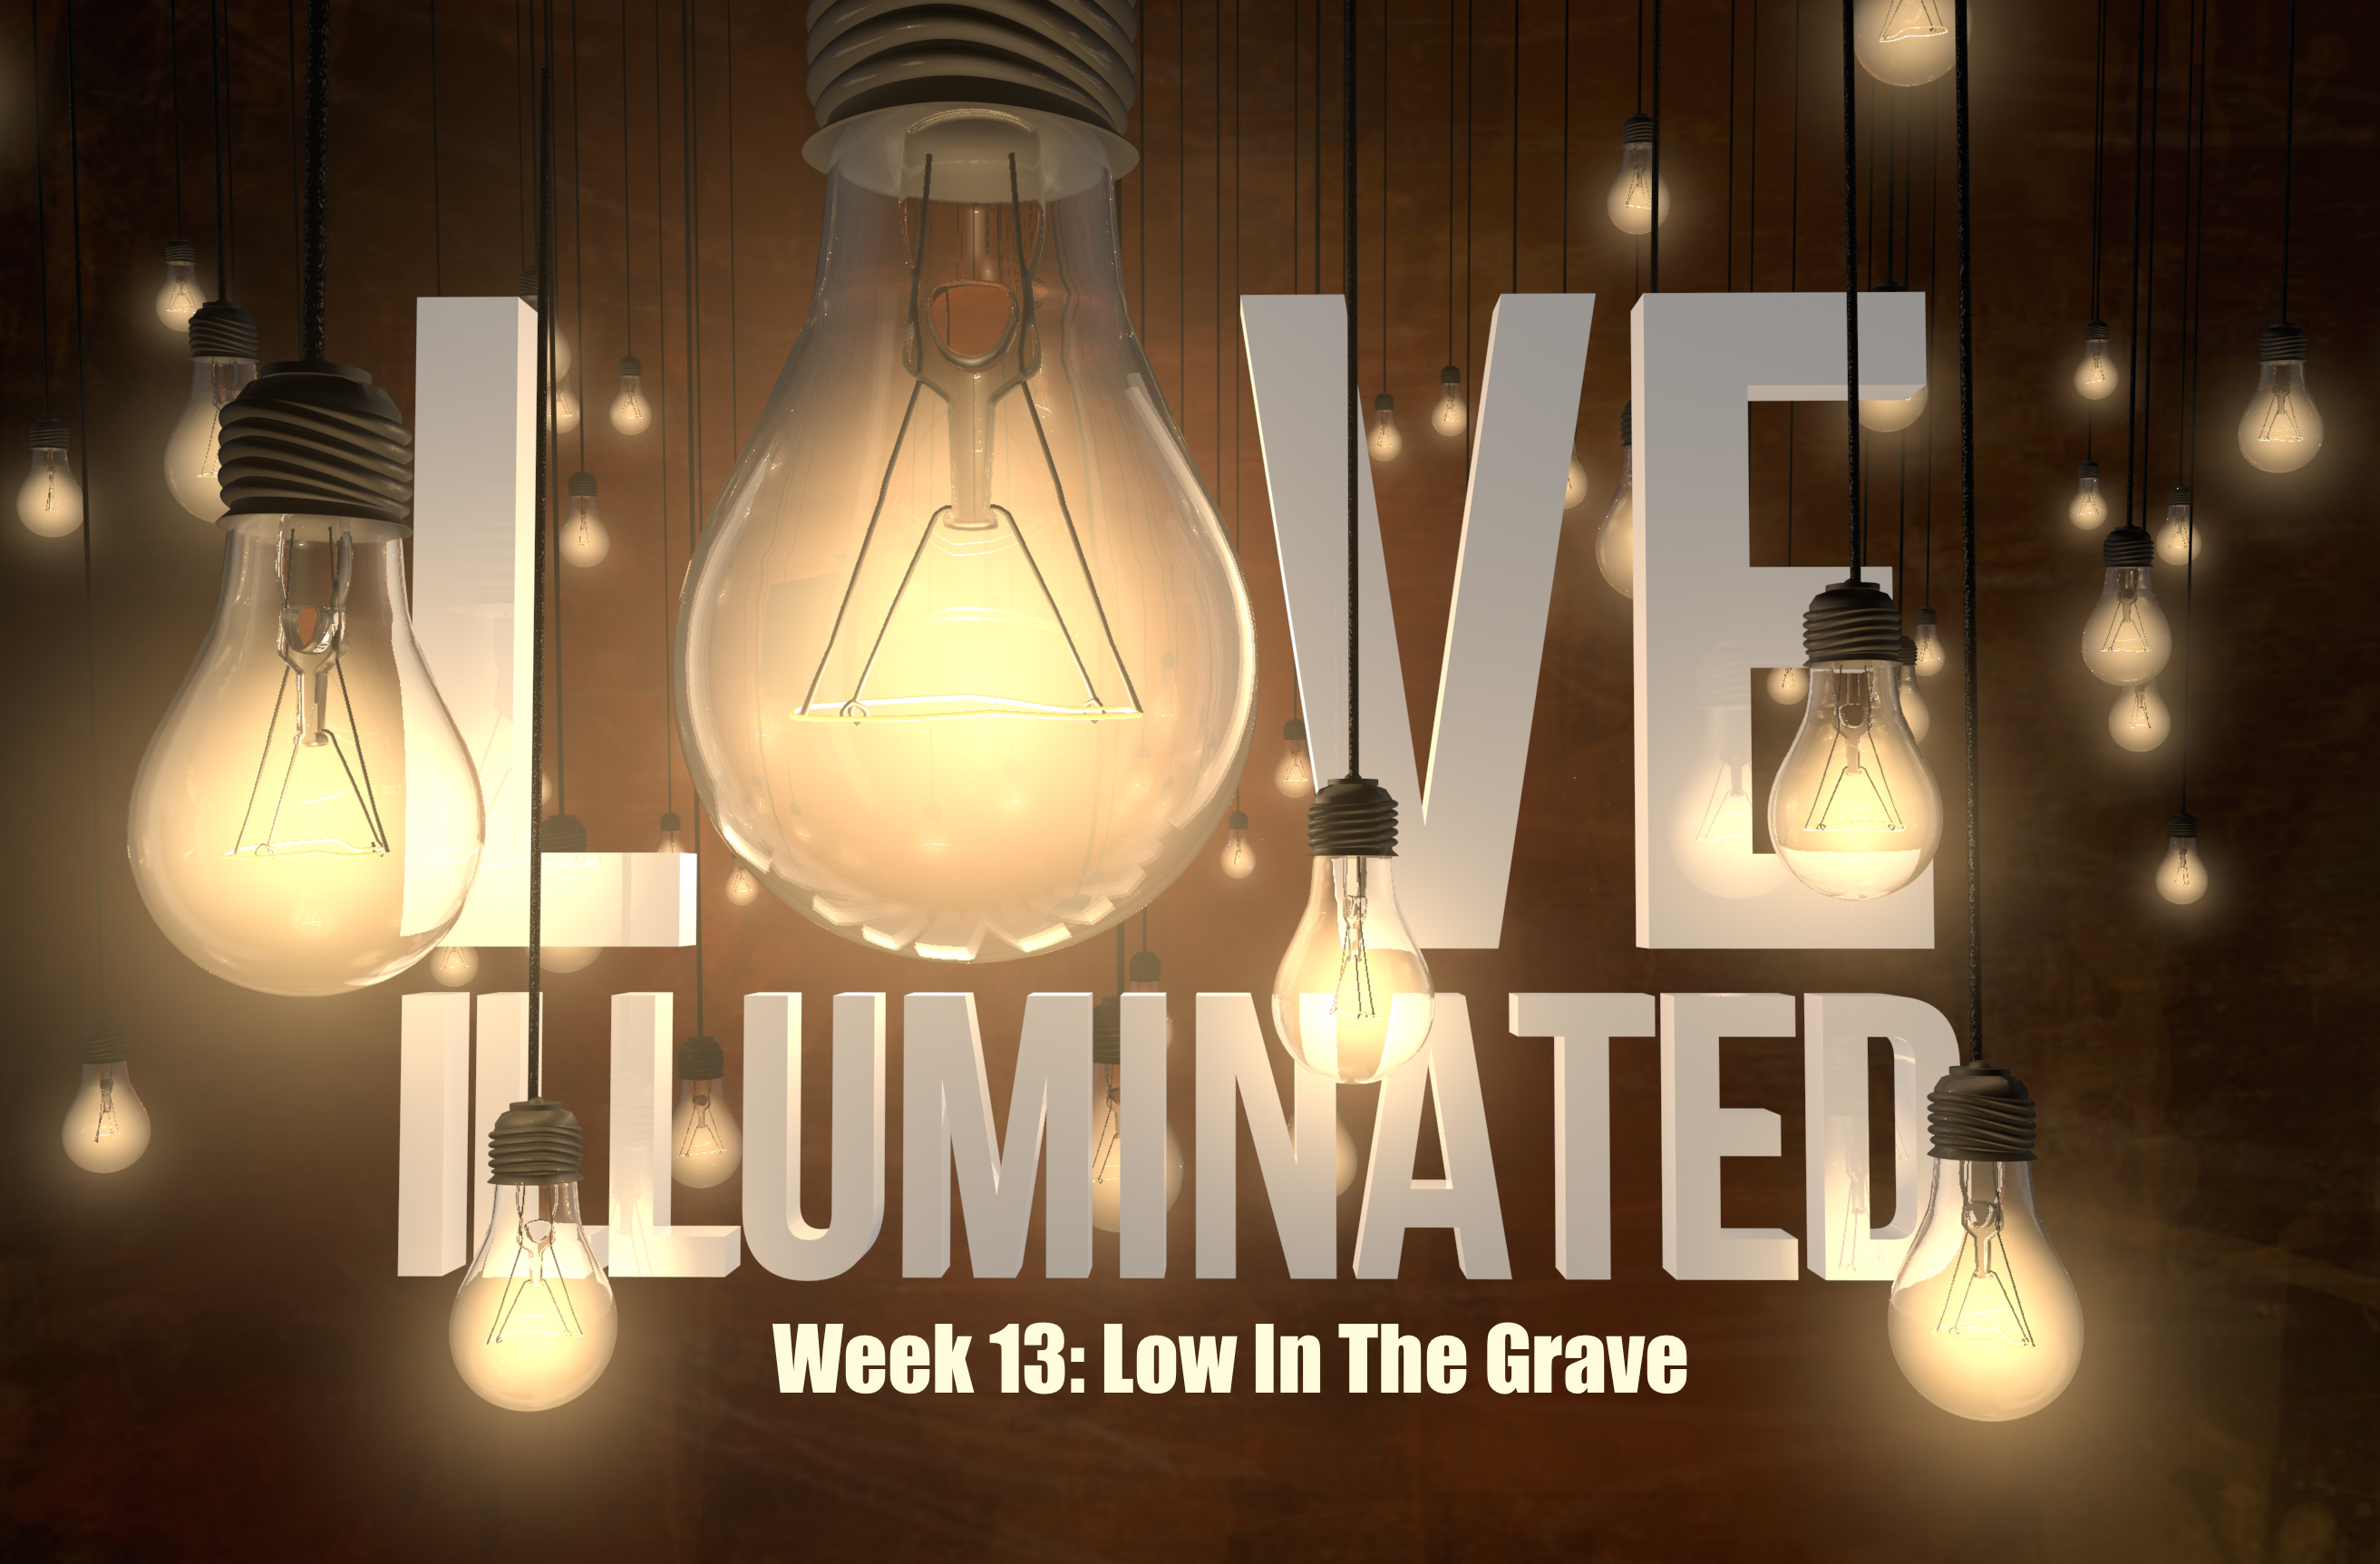 Love Illuminated, Part 13: Low In The Grave